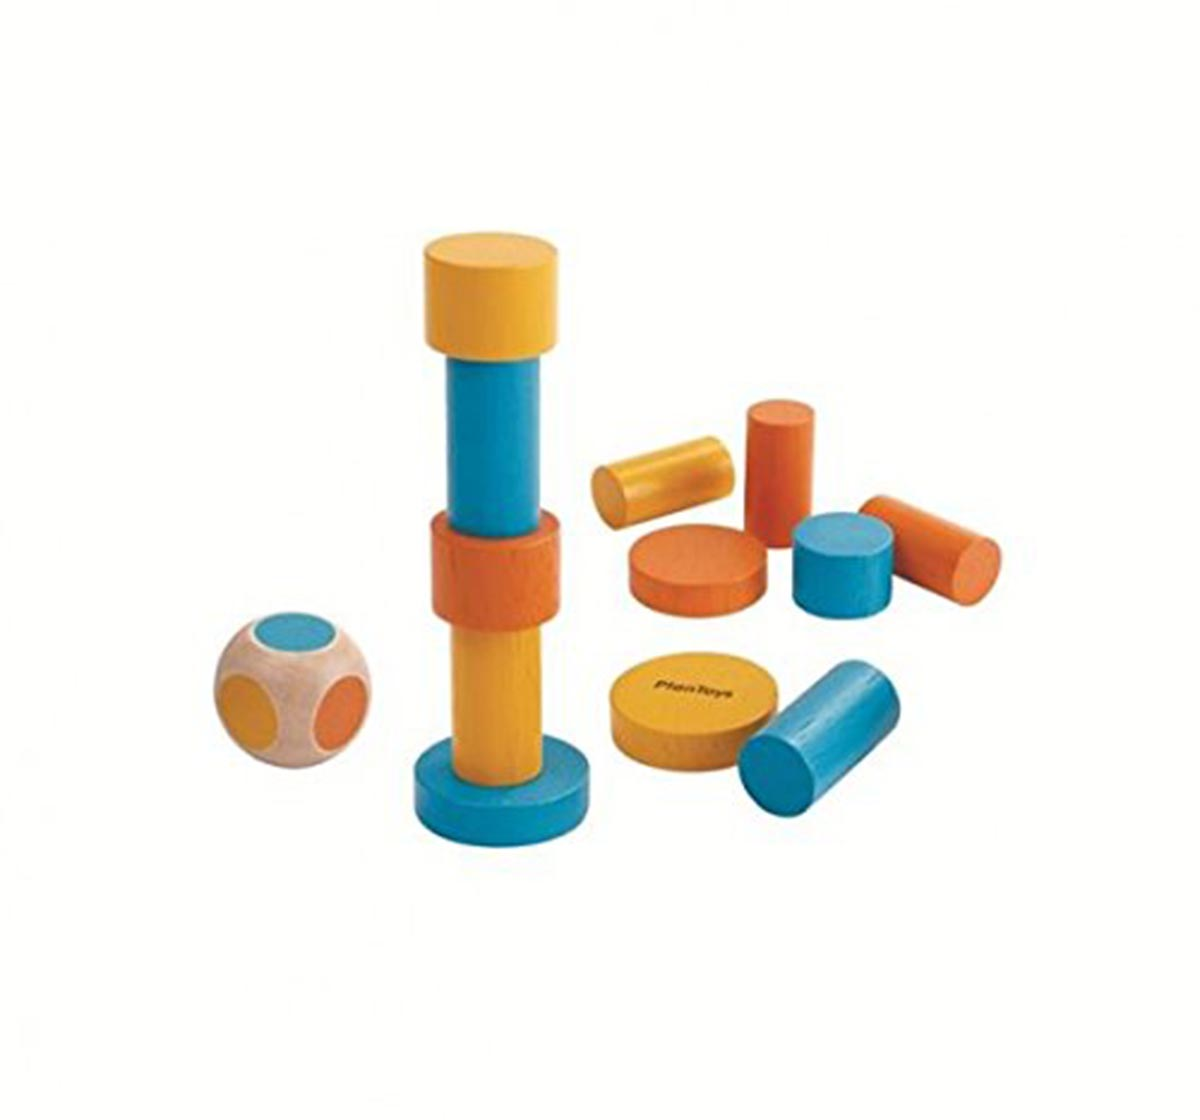 Plan Toys | Plan Toys Stacking Game (6 Boxes/Pack) for Kids age 3Y+